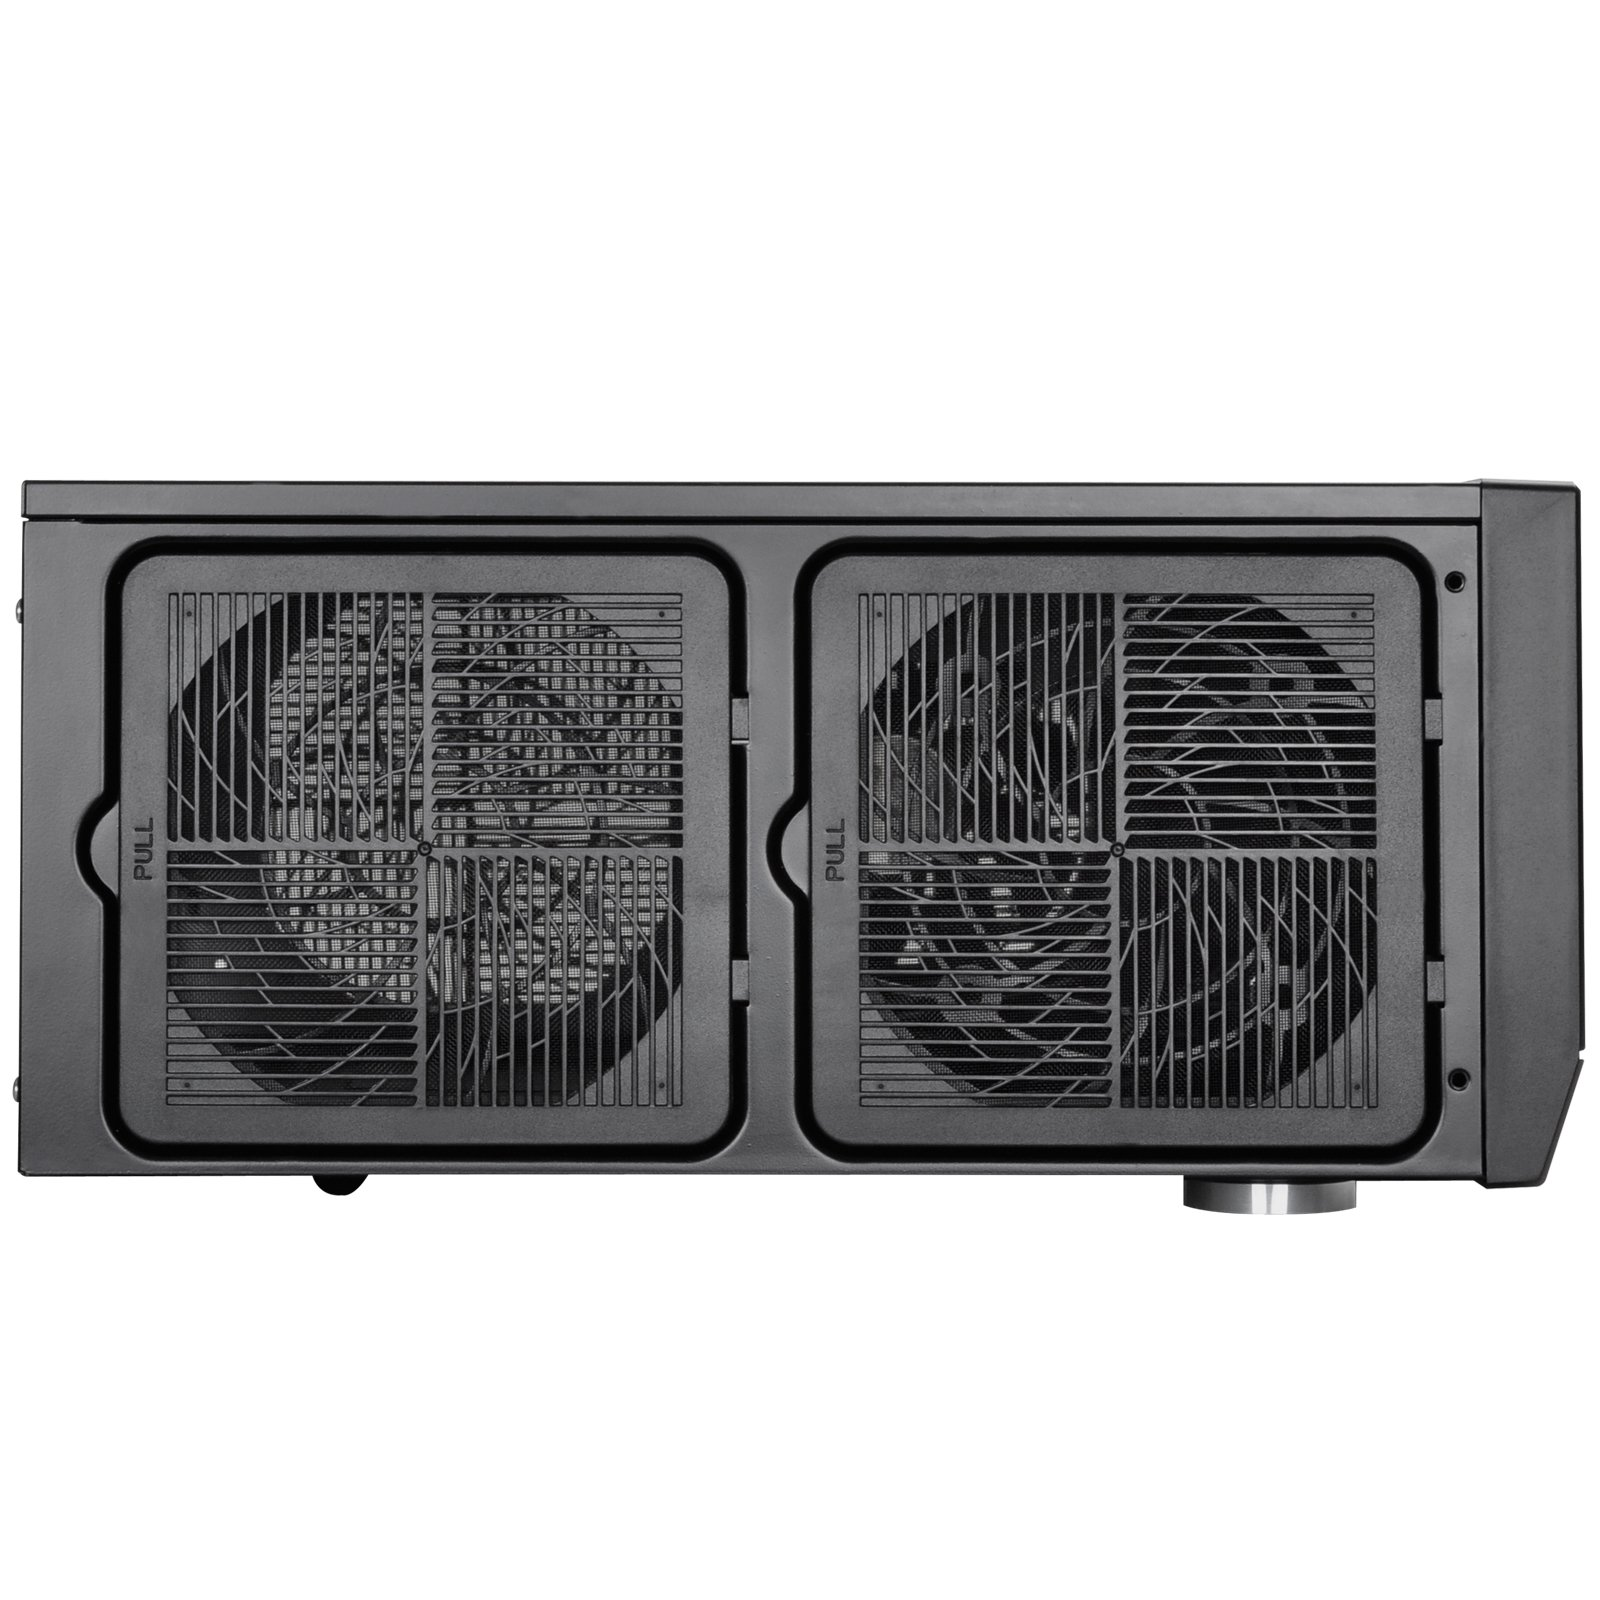 SilverStone Technology Home Theater Computer Case (HTPC) with Faux Aluminum Design for ATX/Micro-ATX Motherboards GD09B by SilverStone Technology (Image #4)